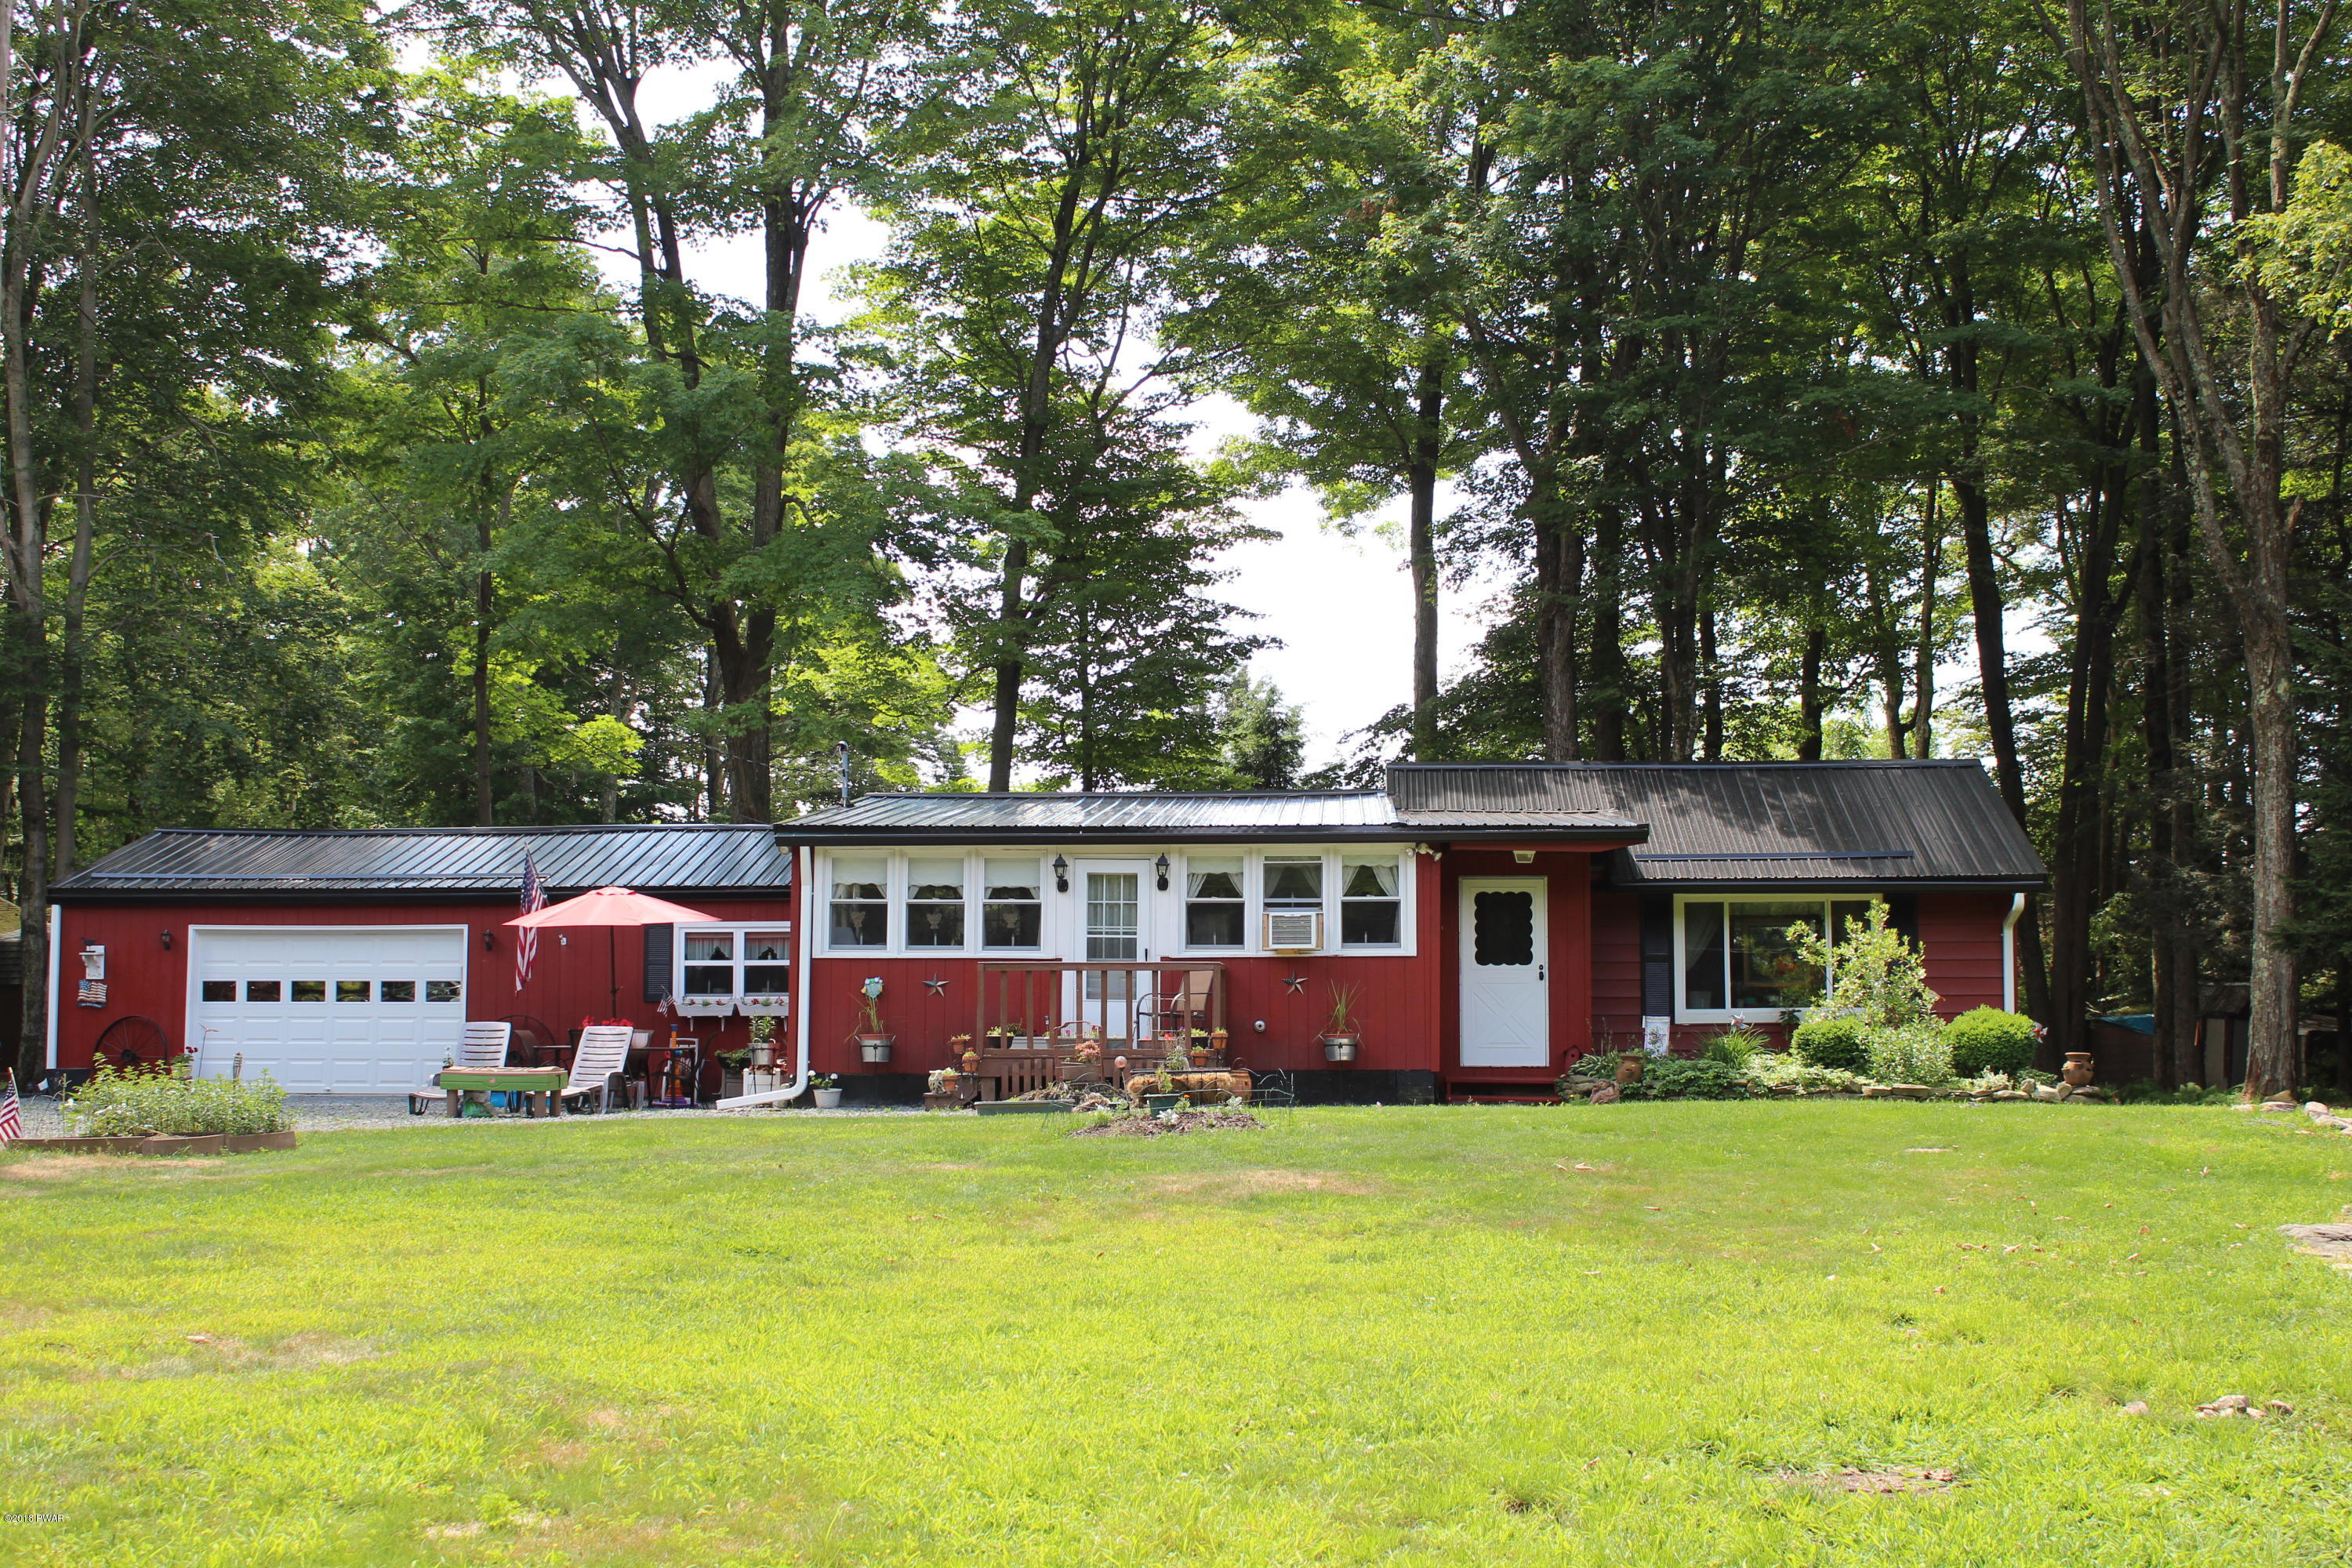 Single Family Home for Sale at 112 Curleys Ln 112 Curleys Ln Greentown, Pennsylvania 18426